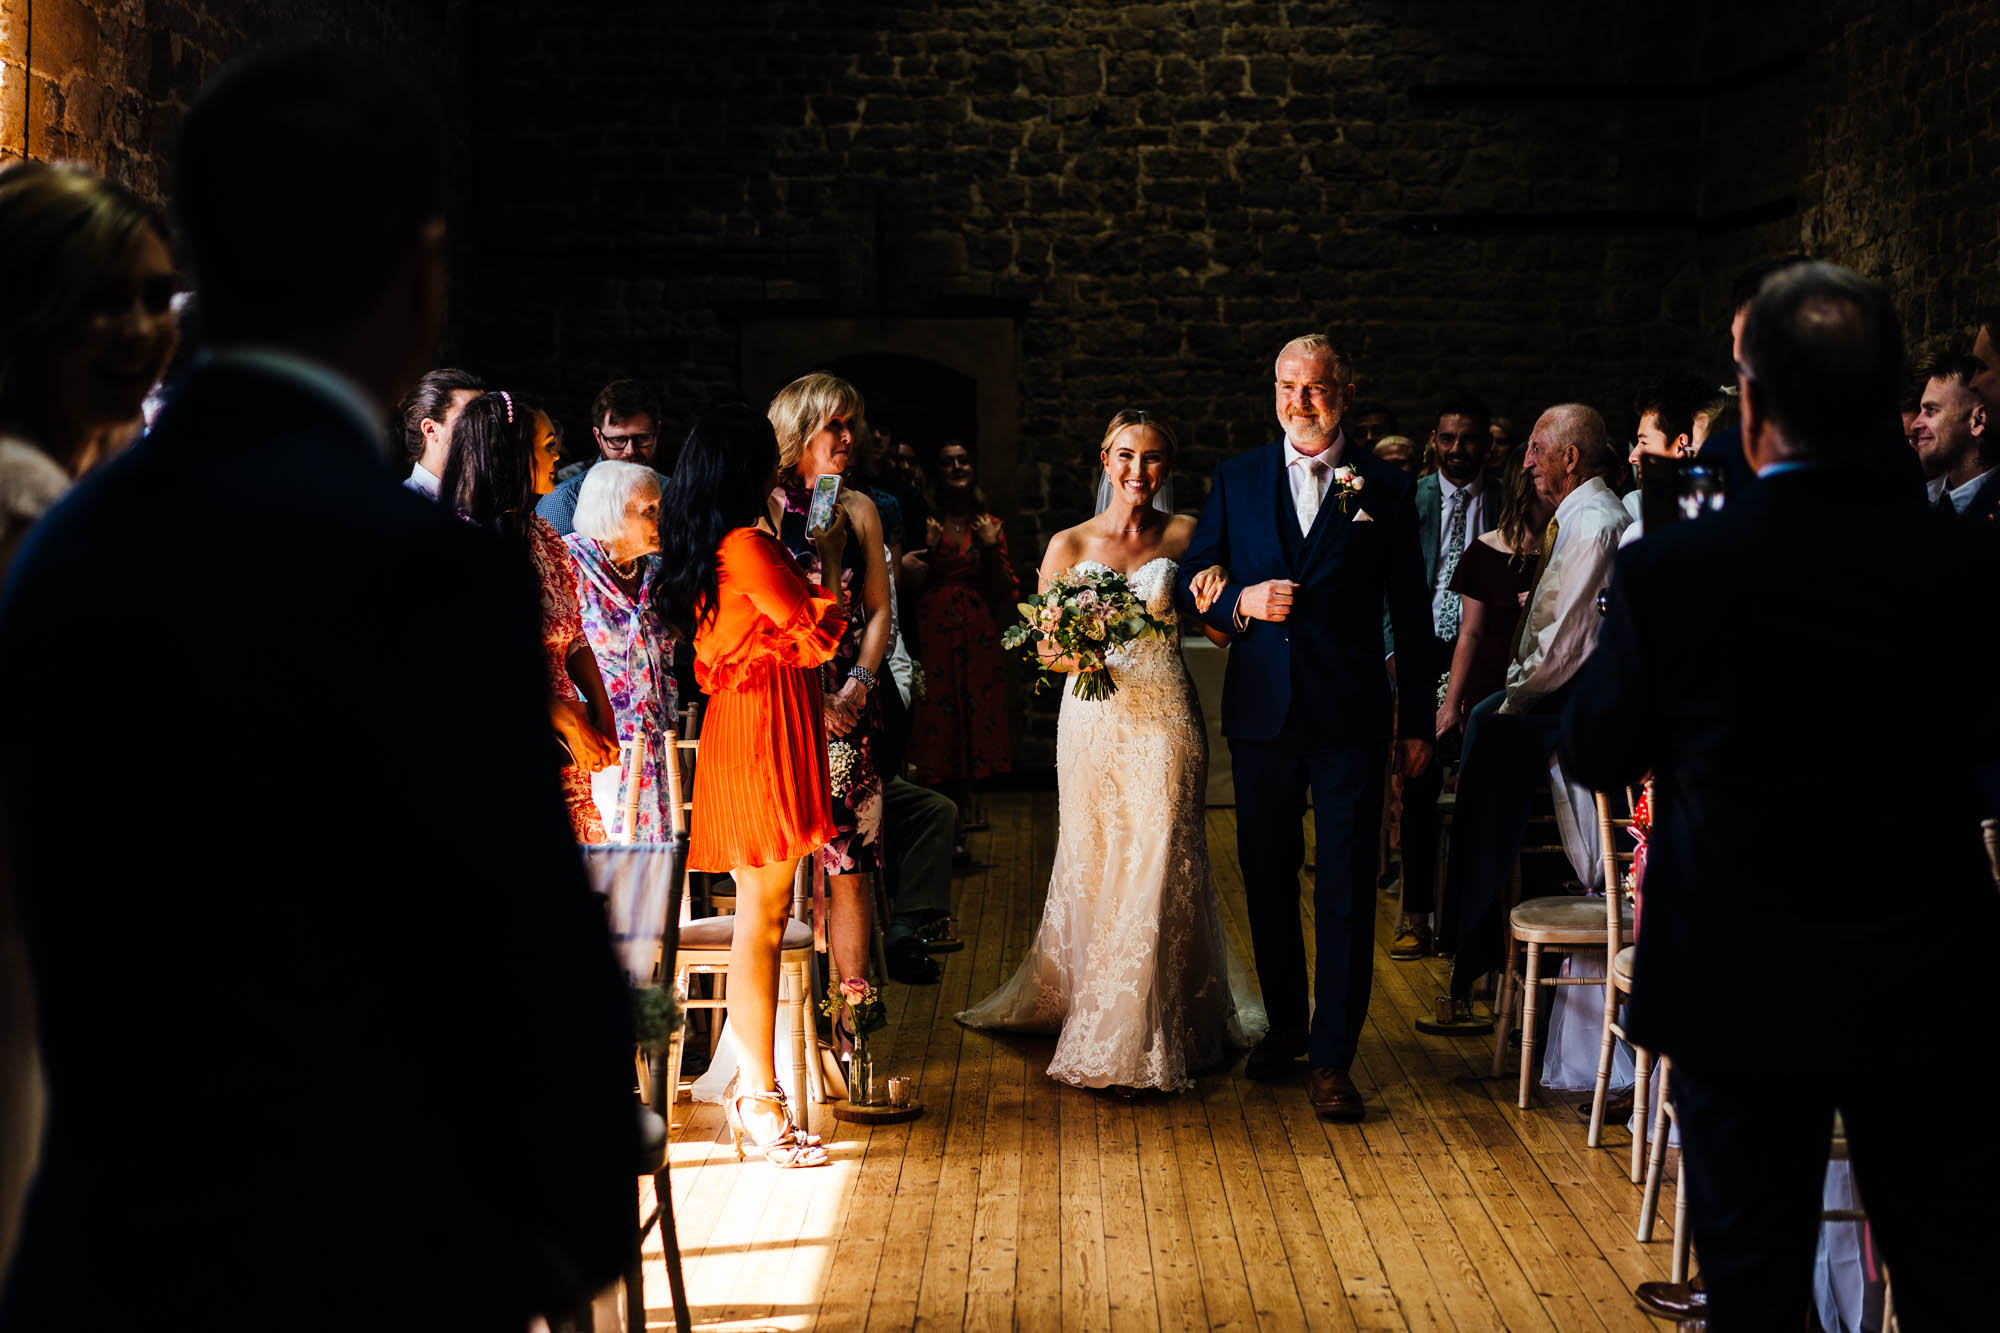 wedding-at-the-barns-at-hunsbury-hill-16